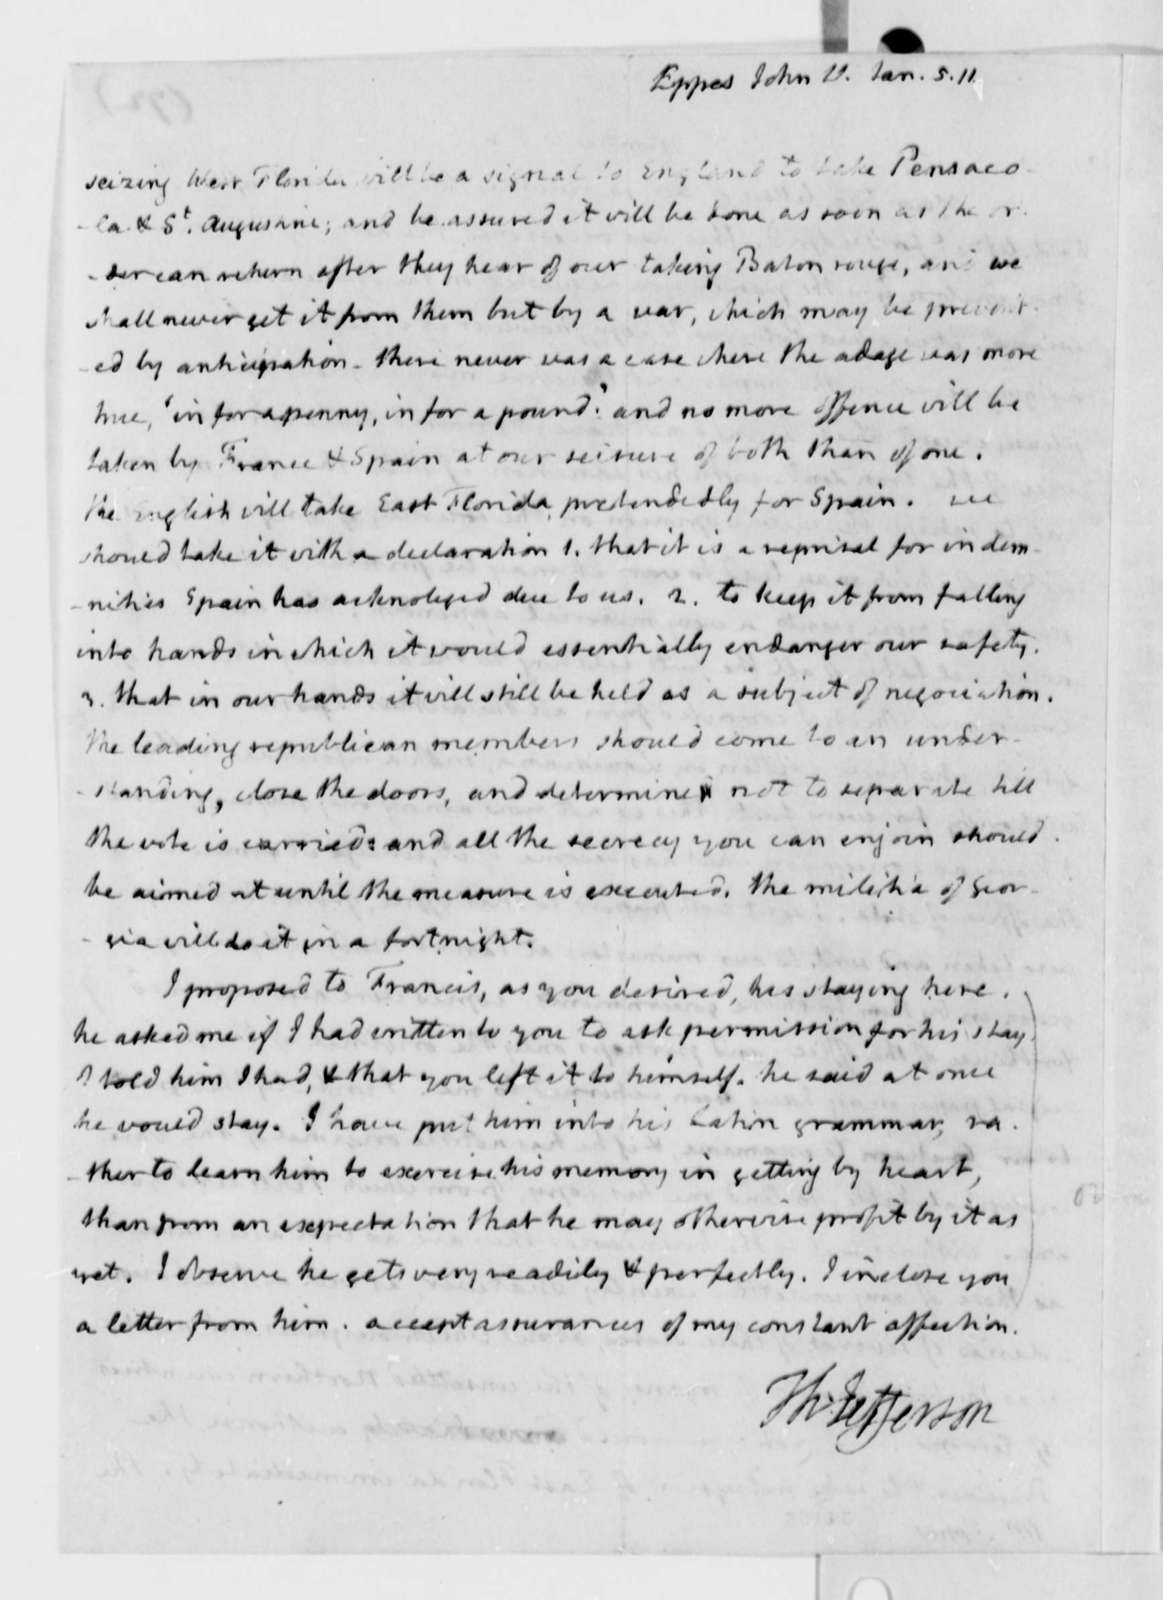 Thomas Jefferson to John Wayles Eppes, January 5, 1811